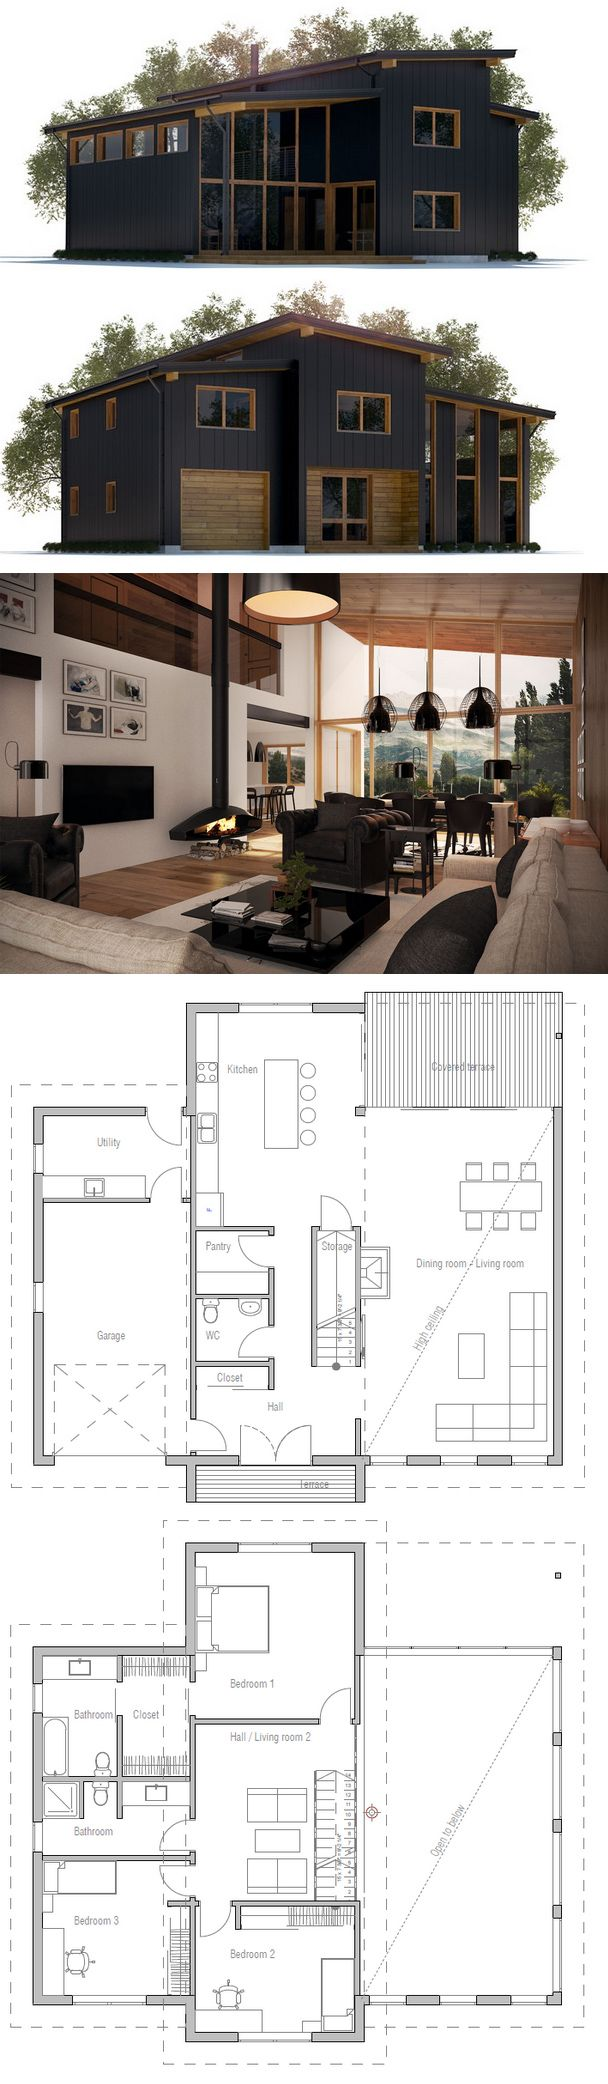 Modern 4 Bedroom House Plans 17 Best Ideas About Loft Floor Plans On Pinterest Small Home